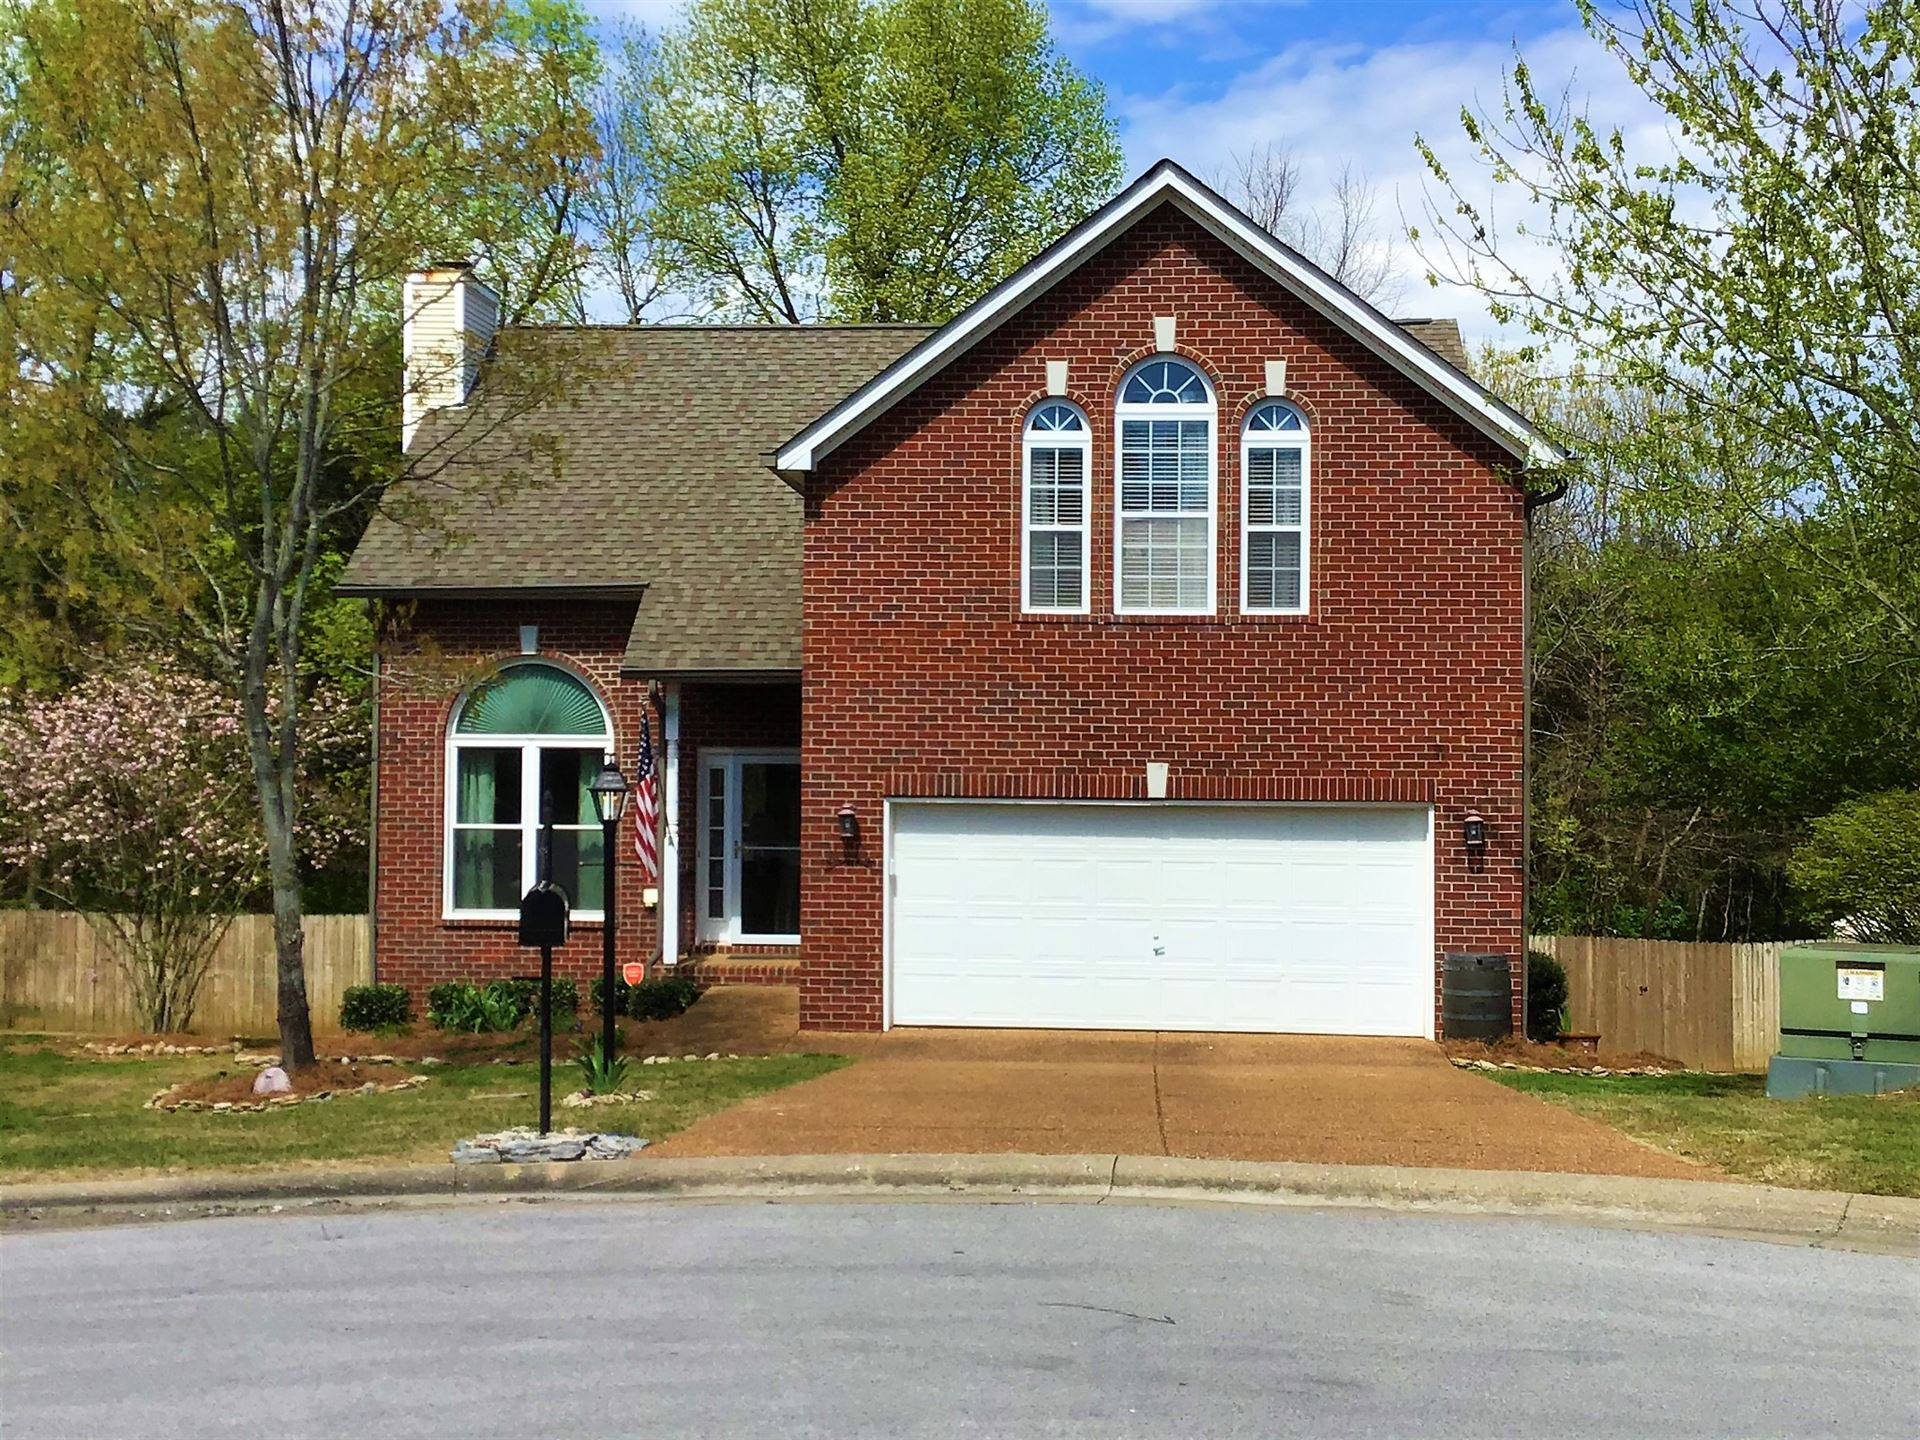 Photo of 420 Annapolis Cir, Hermitage, TN 37076 (MLS # 2138406)